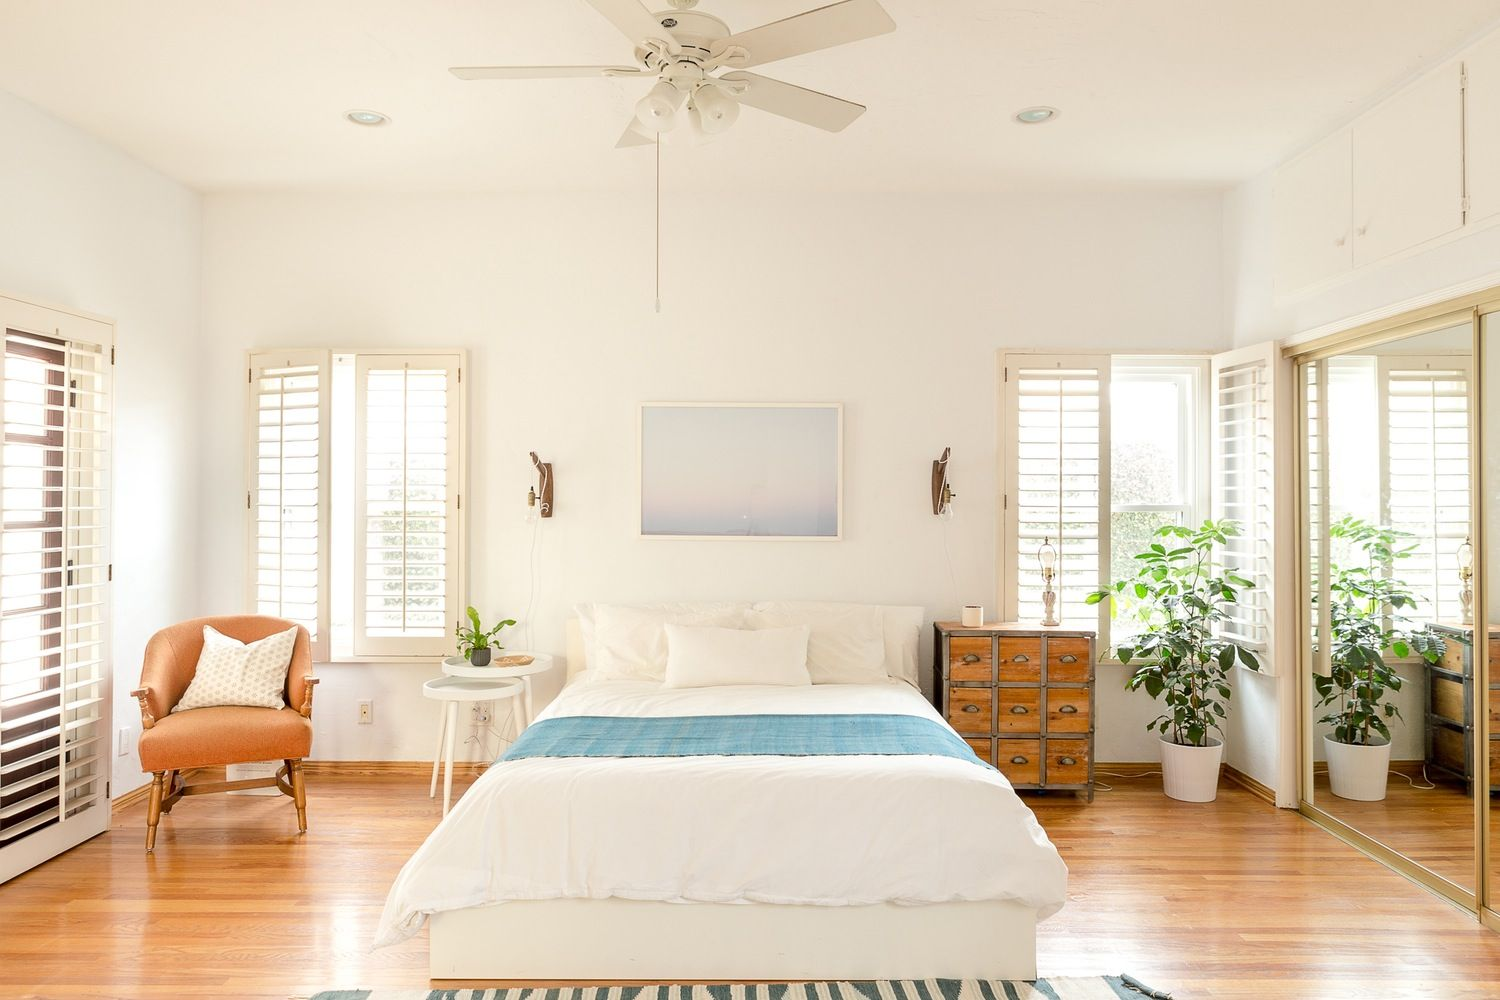 Get the Look: Light, Breezy & Natural California Style — Shop the Style